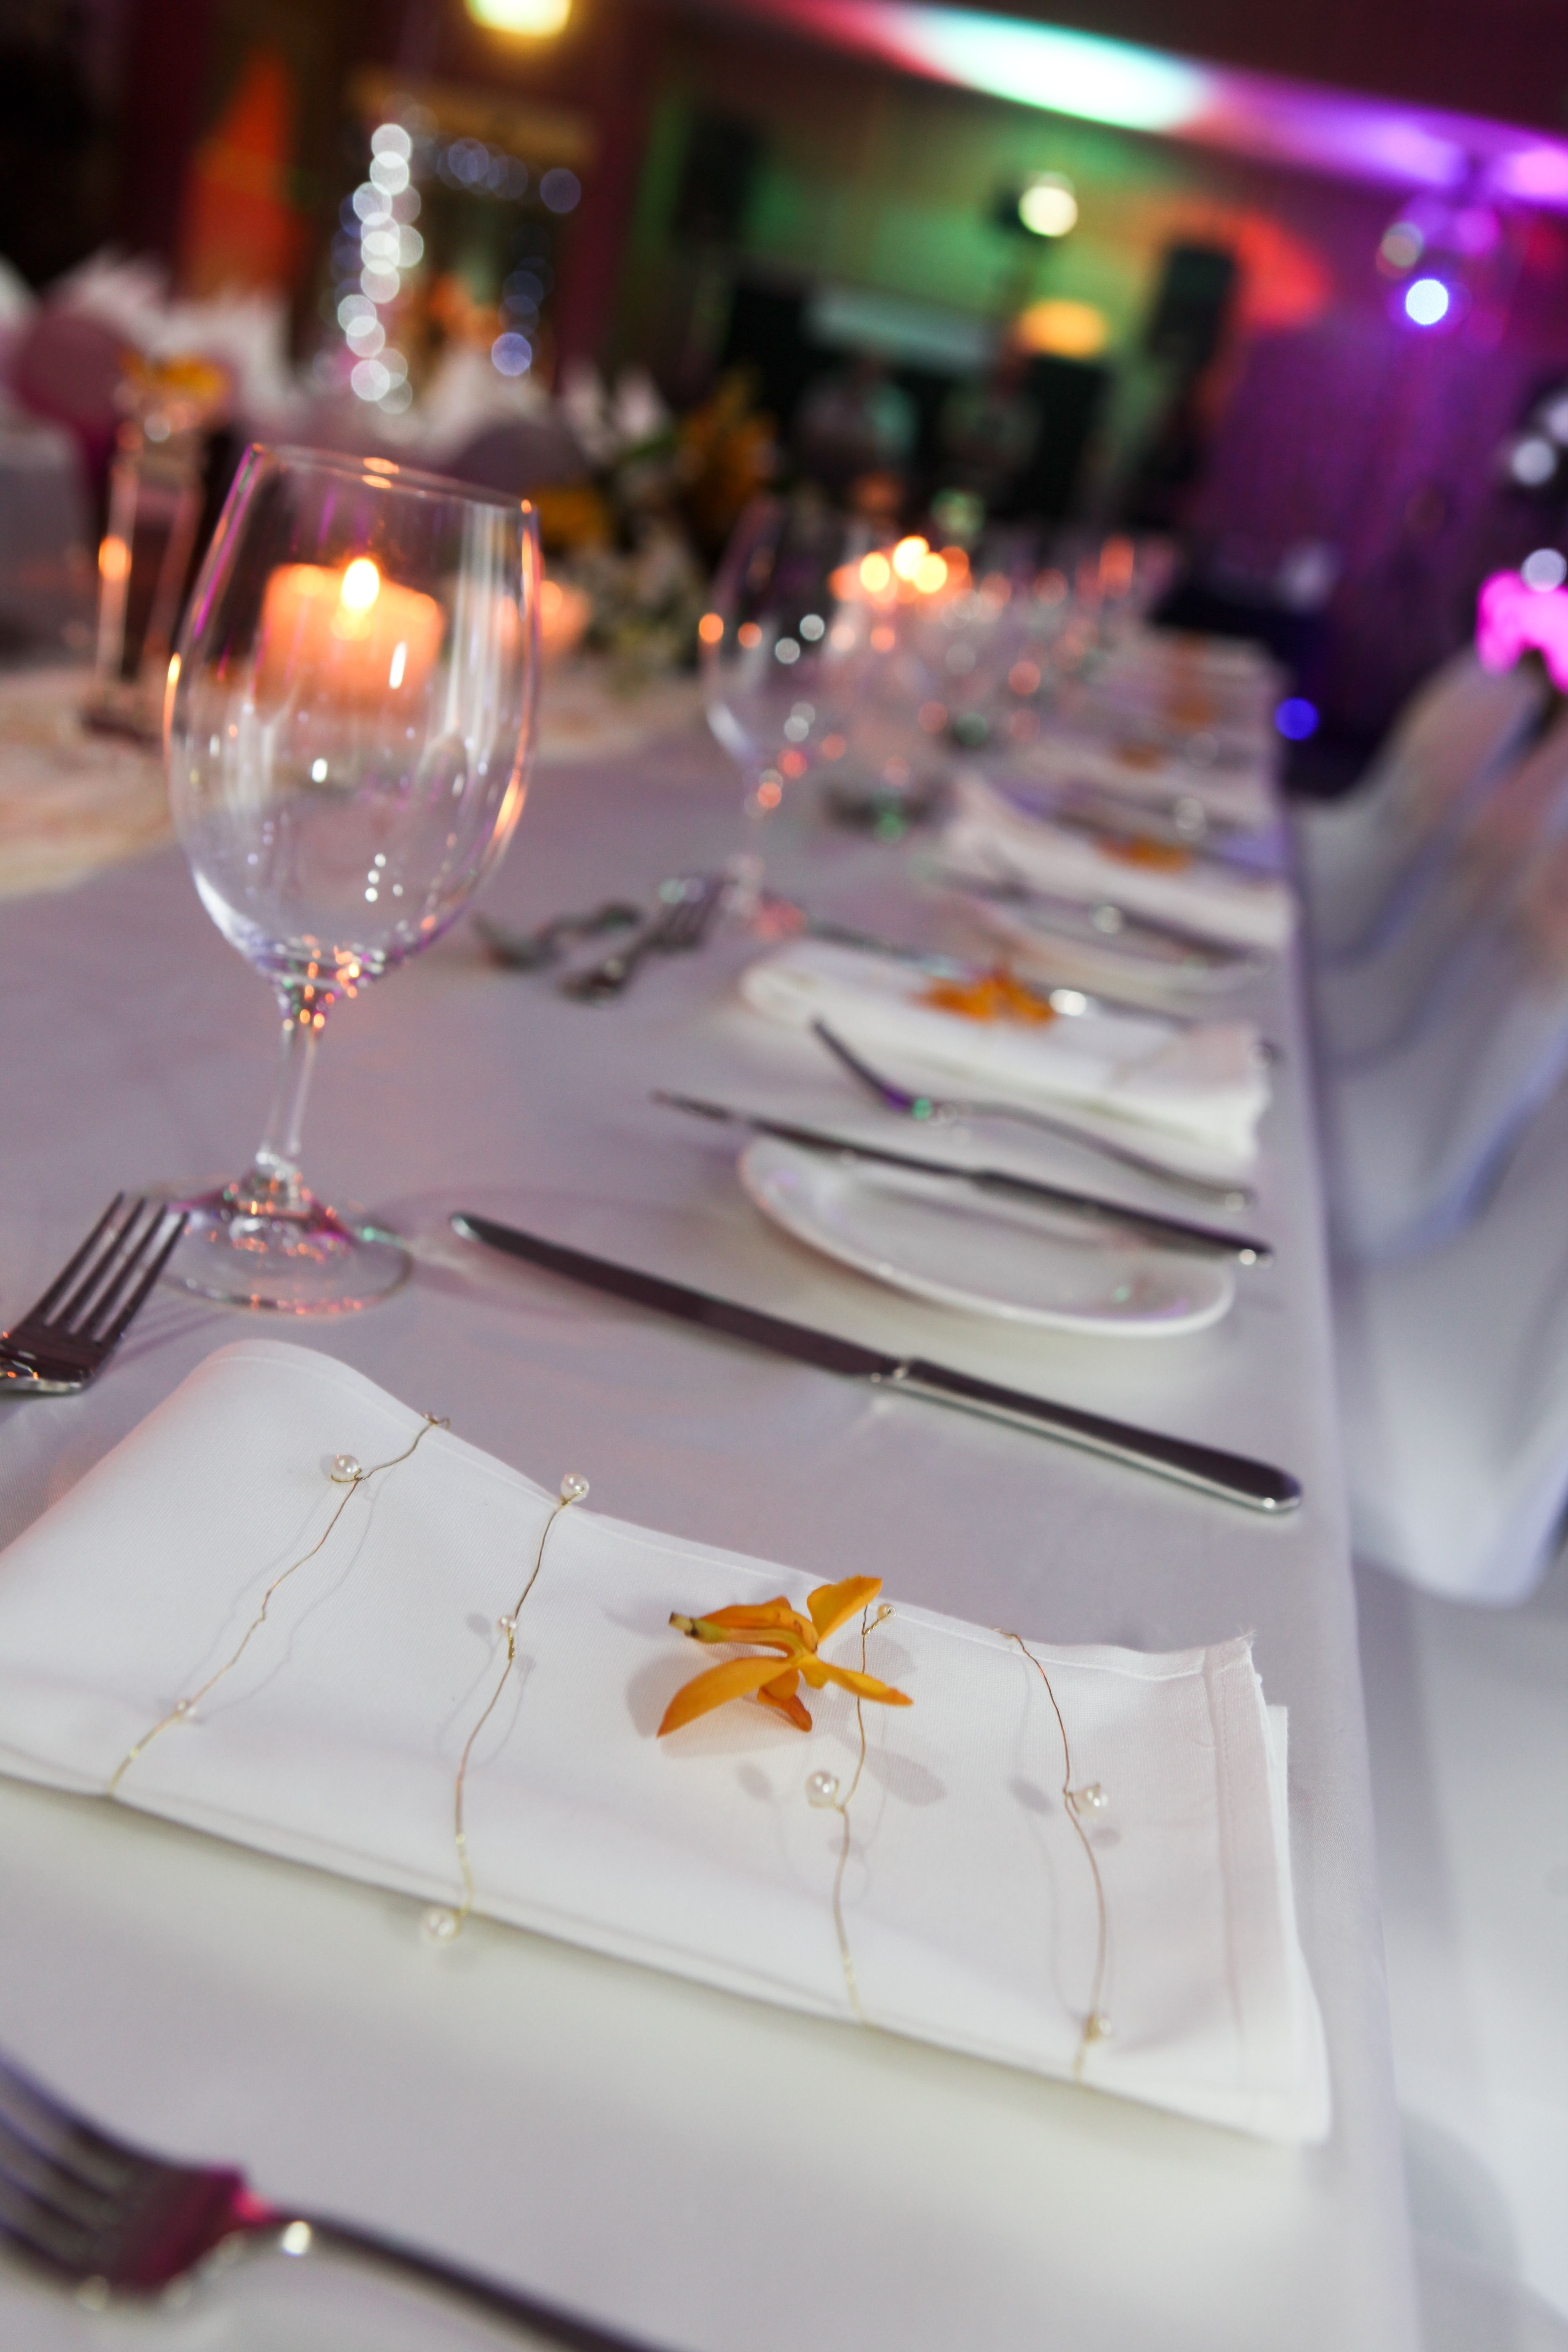 A simple way to add colour to the bridal & guest tables is by placing an orchid on each napkin